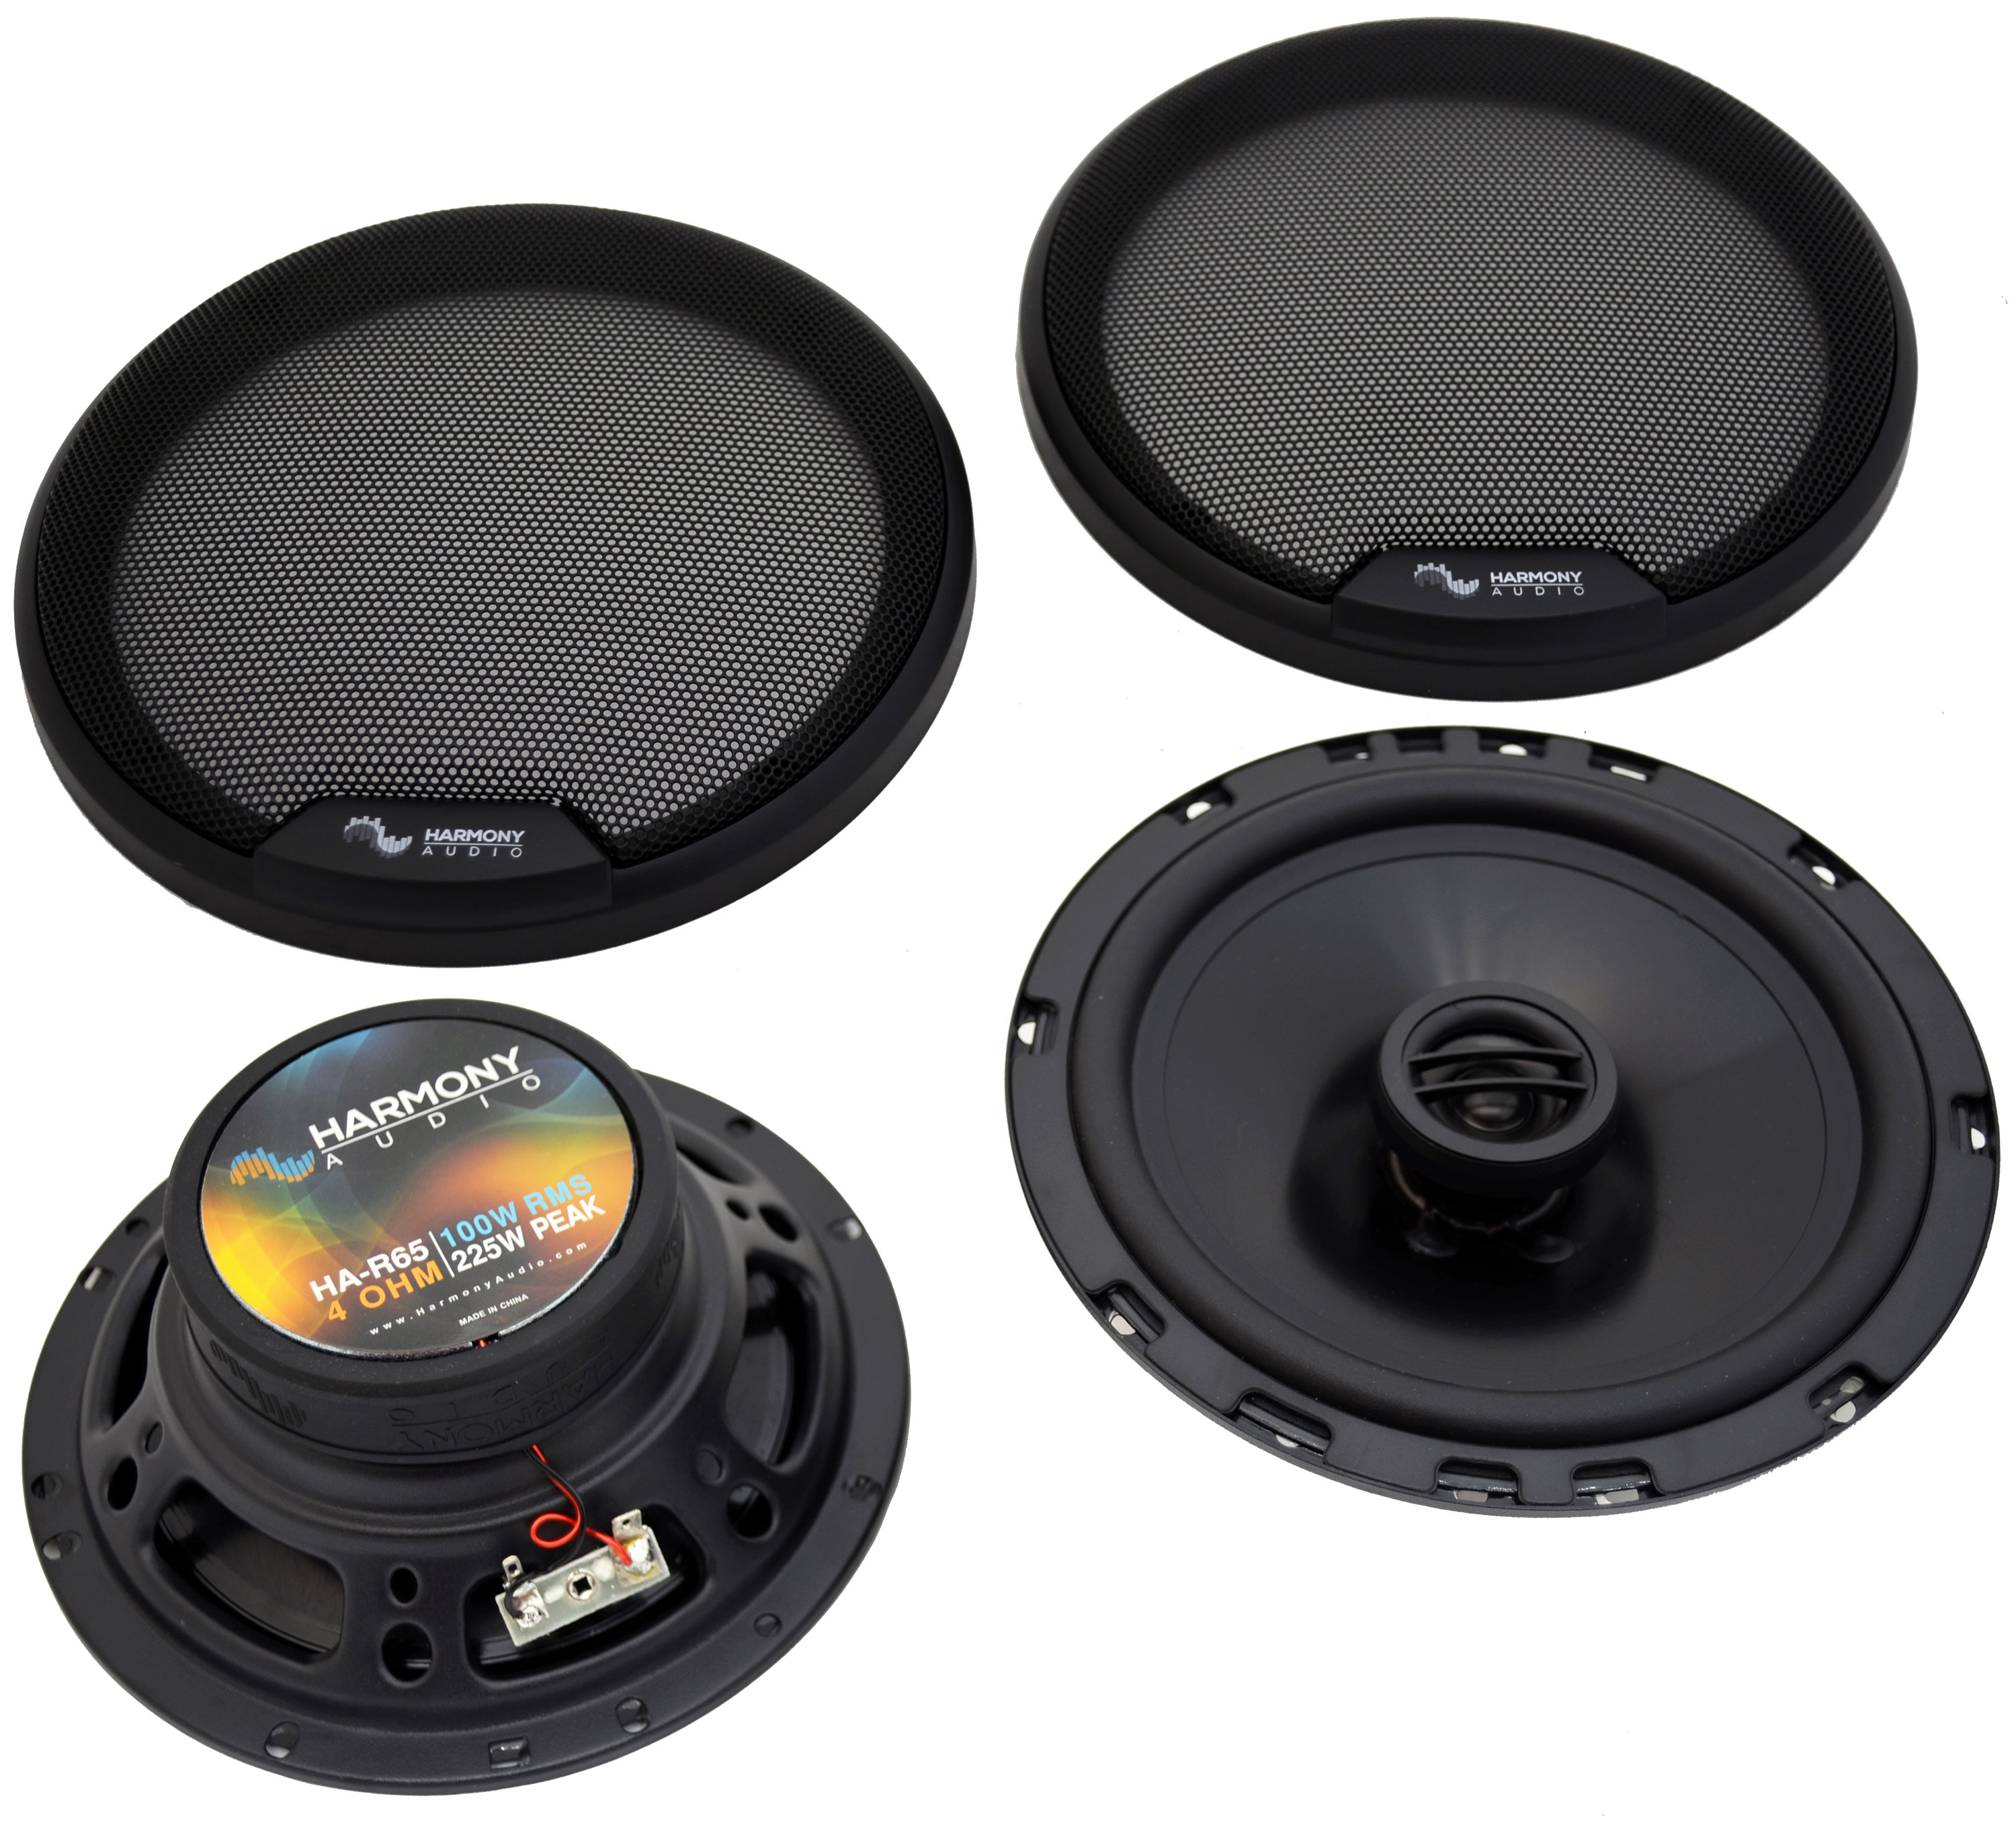 Fits BMW X1 2013-2015 Rear Deck Replacement Speaker Harmony HA-R65 Speakers New